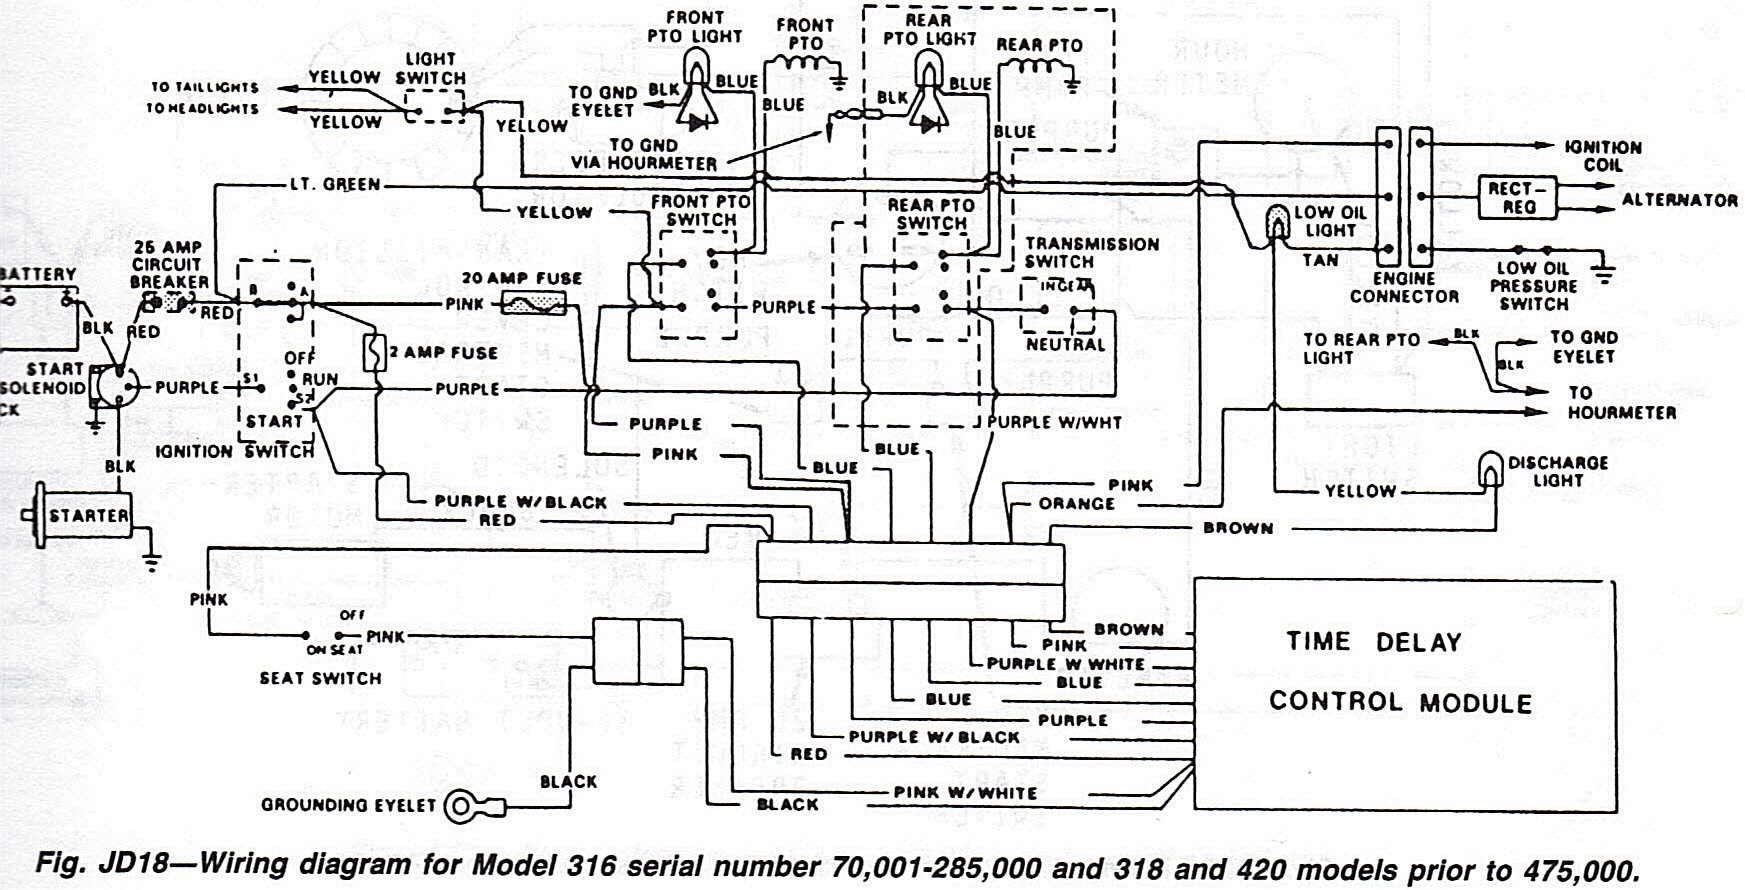 L120 Wiring Schematic | Wiring Diagram on john deere 445 wiring-diagram, john deere m wiring-diagram, john deere d140 wiring diagram, john deere la165 wiring diagram, john deere la140 wiring diagram, john deere 345 kawasaki wiring diagrams, john deere la115 wiring diagram, john deere lx277 wiring-diagram, john deere la125 wiring diagram, john deere 212 wiring-diagram, john deere wiring harness diagram, john deere 322 wiring-diagram, john deere d170 wiring diagram, john deere l120 mower deck parts diagram, john deere gt235 wiring-diagram, john deere mower wiring diagram, john deere la120 wiring diagram, john deere electrical diagrams, john deere voltage regulator wiring diagram, john deere 5103 wiring-diagram,